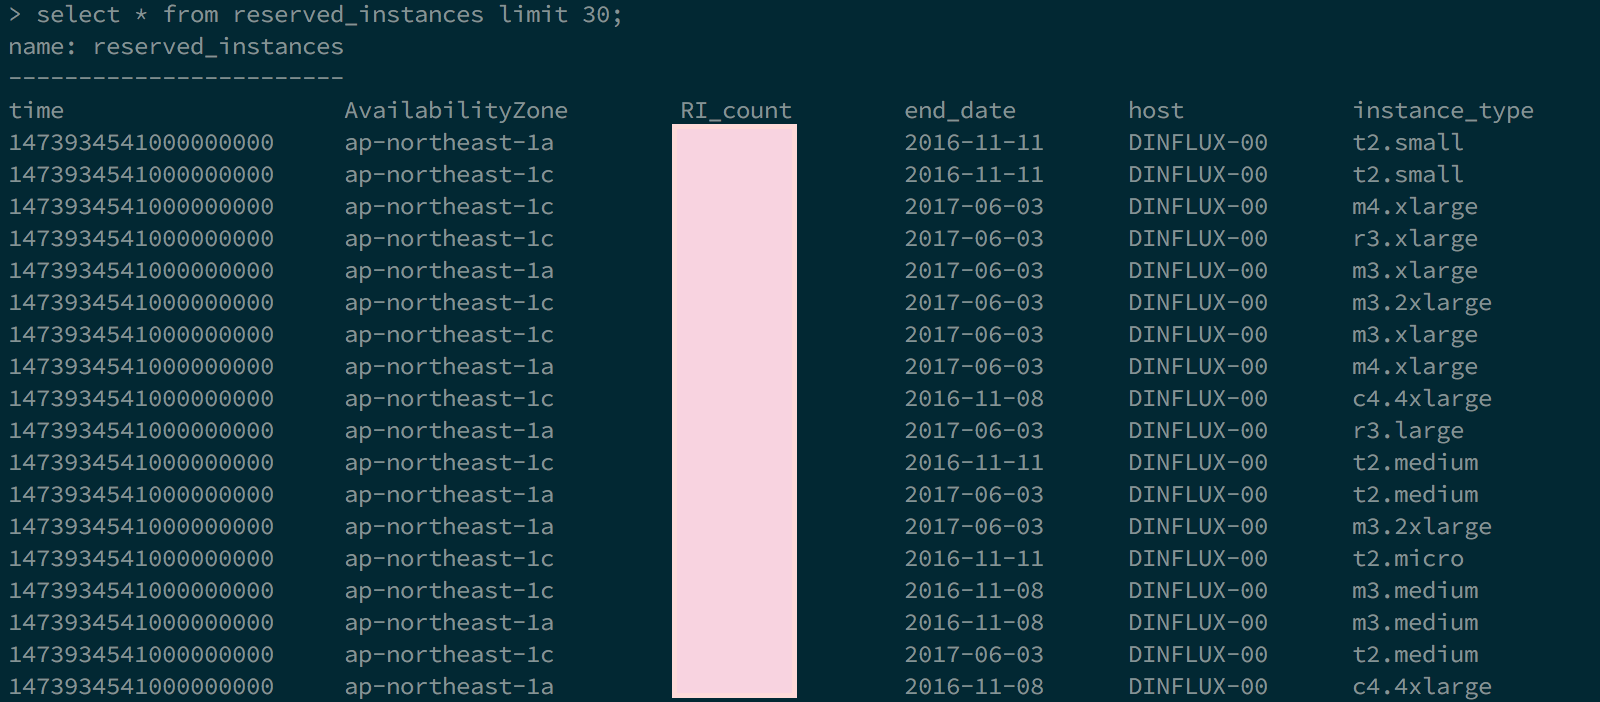 influxdb_reserved_instances.png